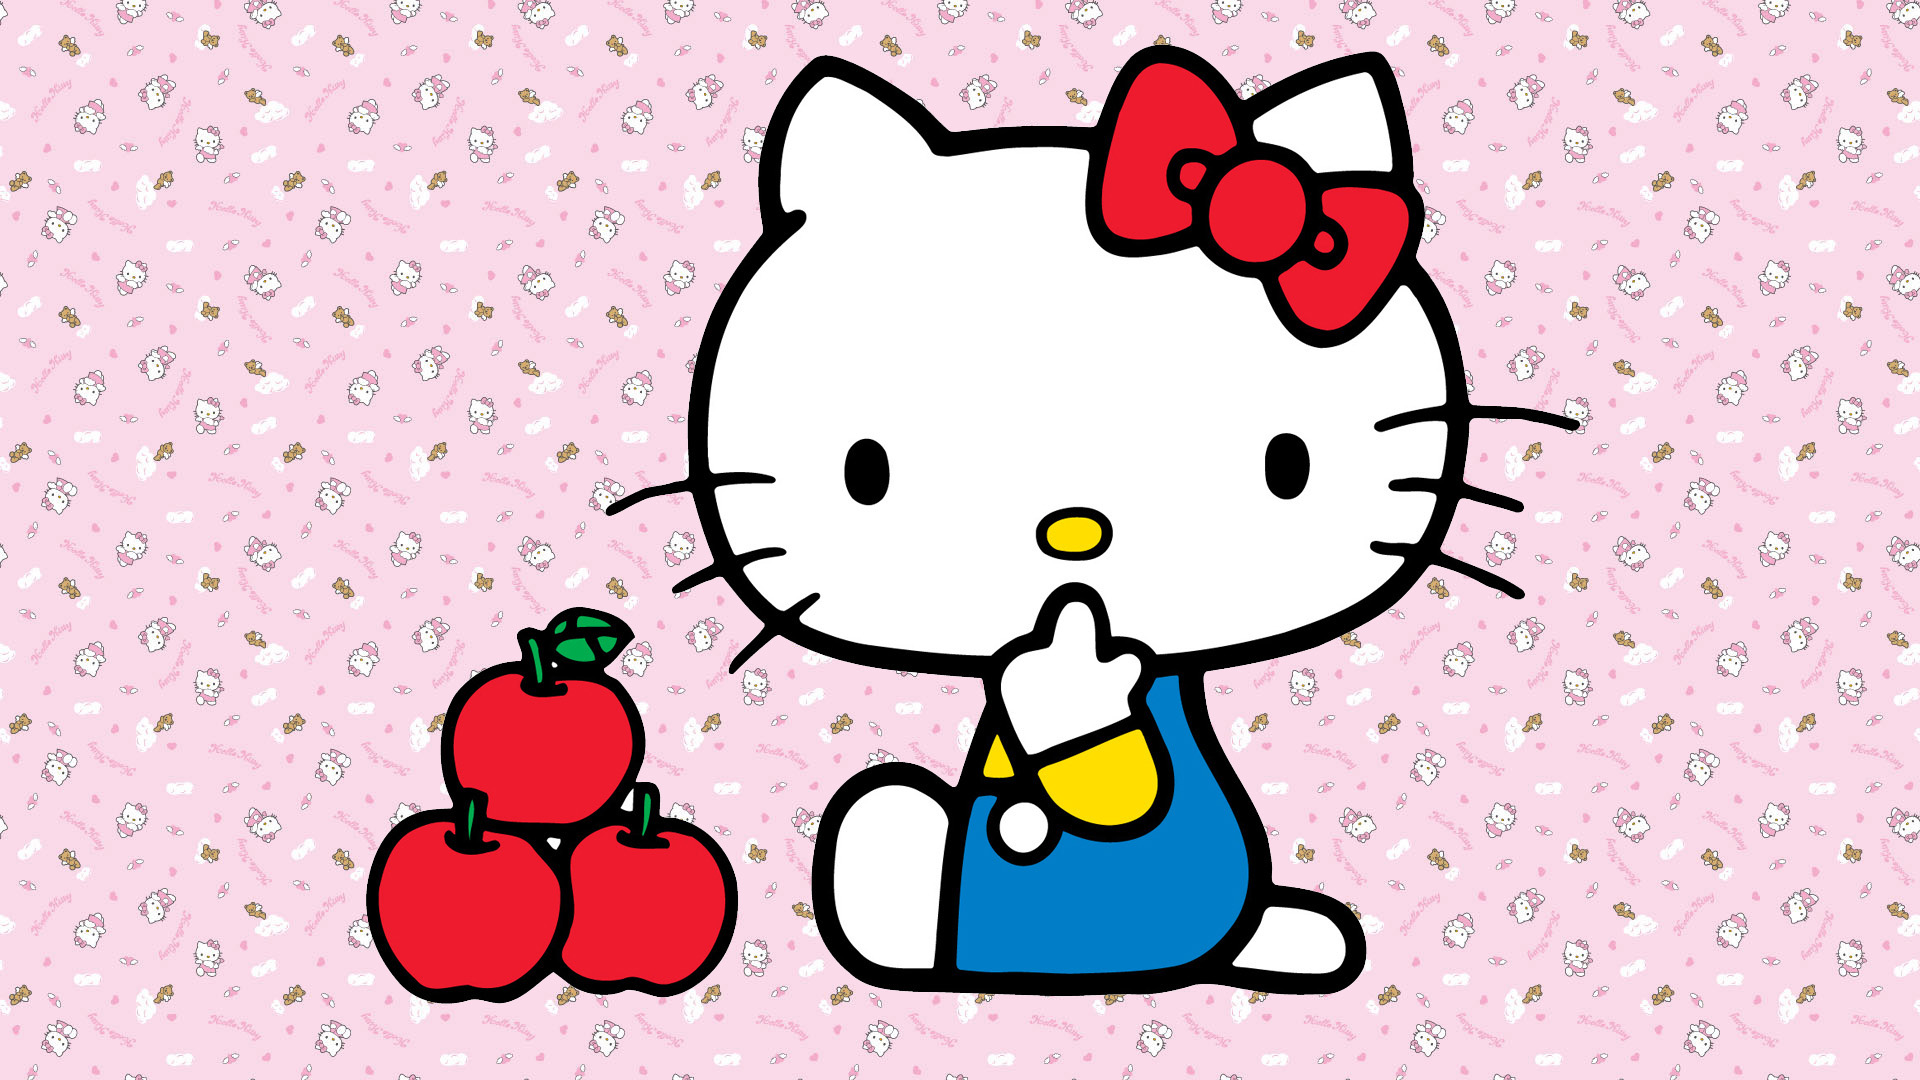 Download Hello Kitty Wallpaper Full Hd Wallpapers 1920x1080